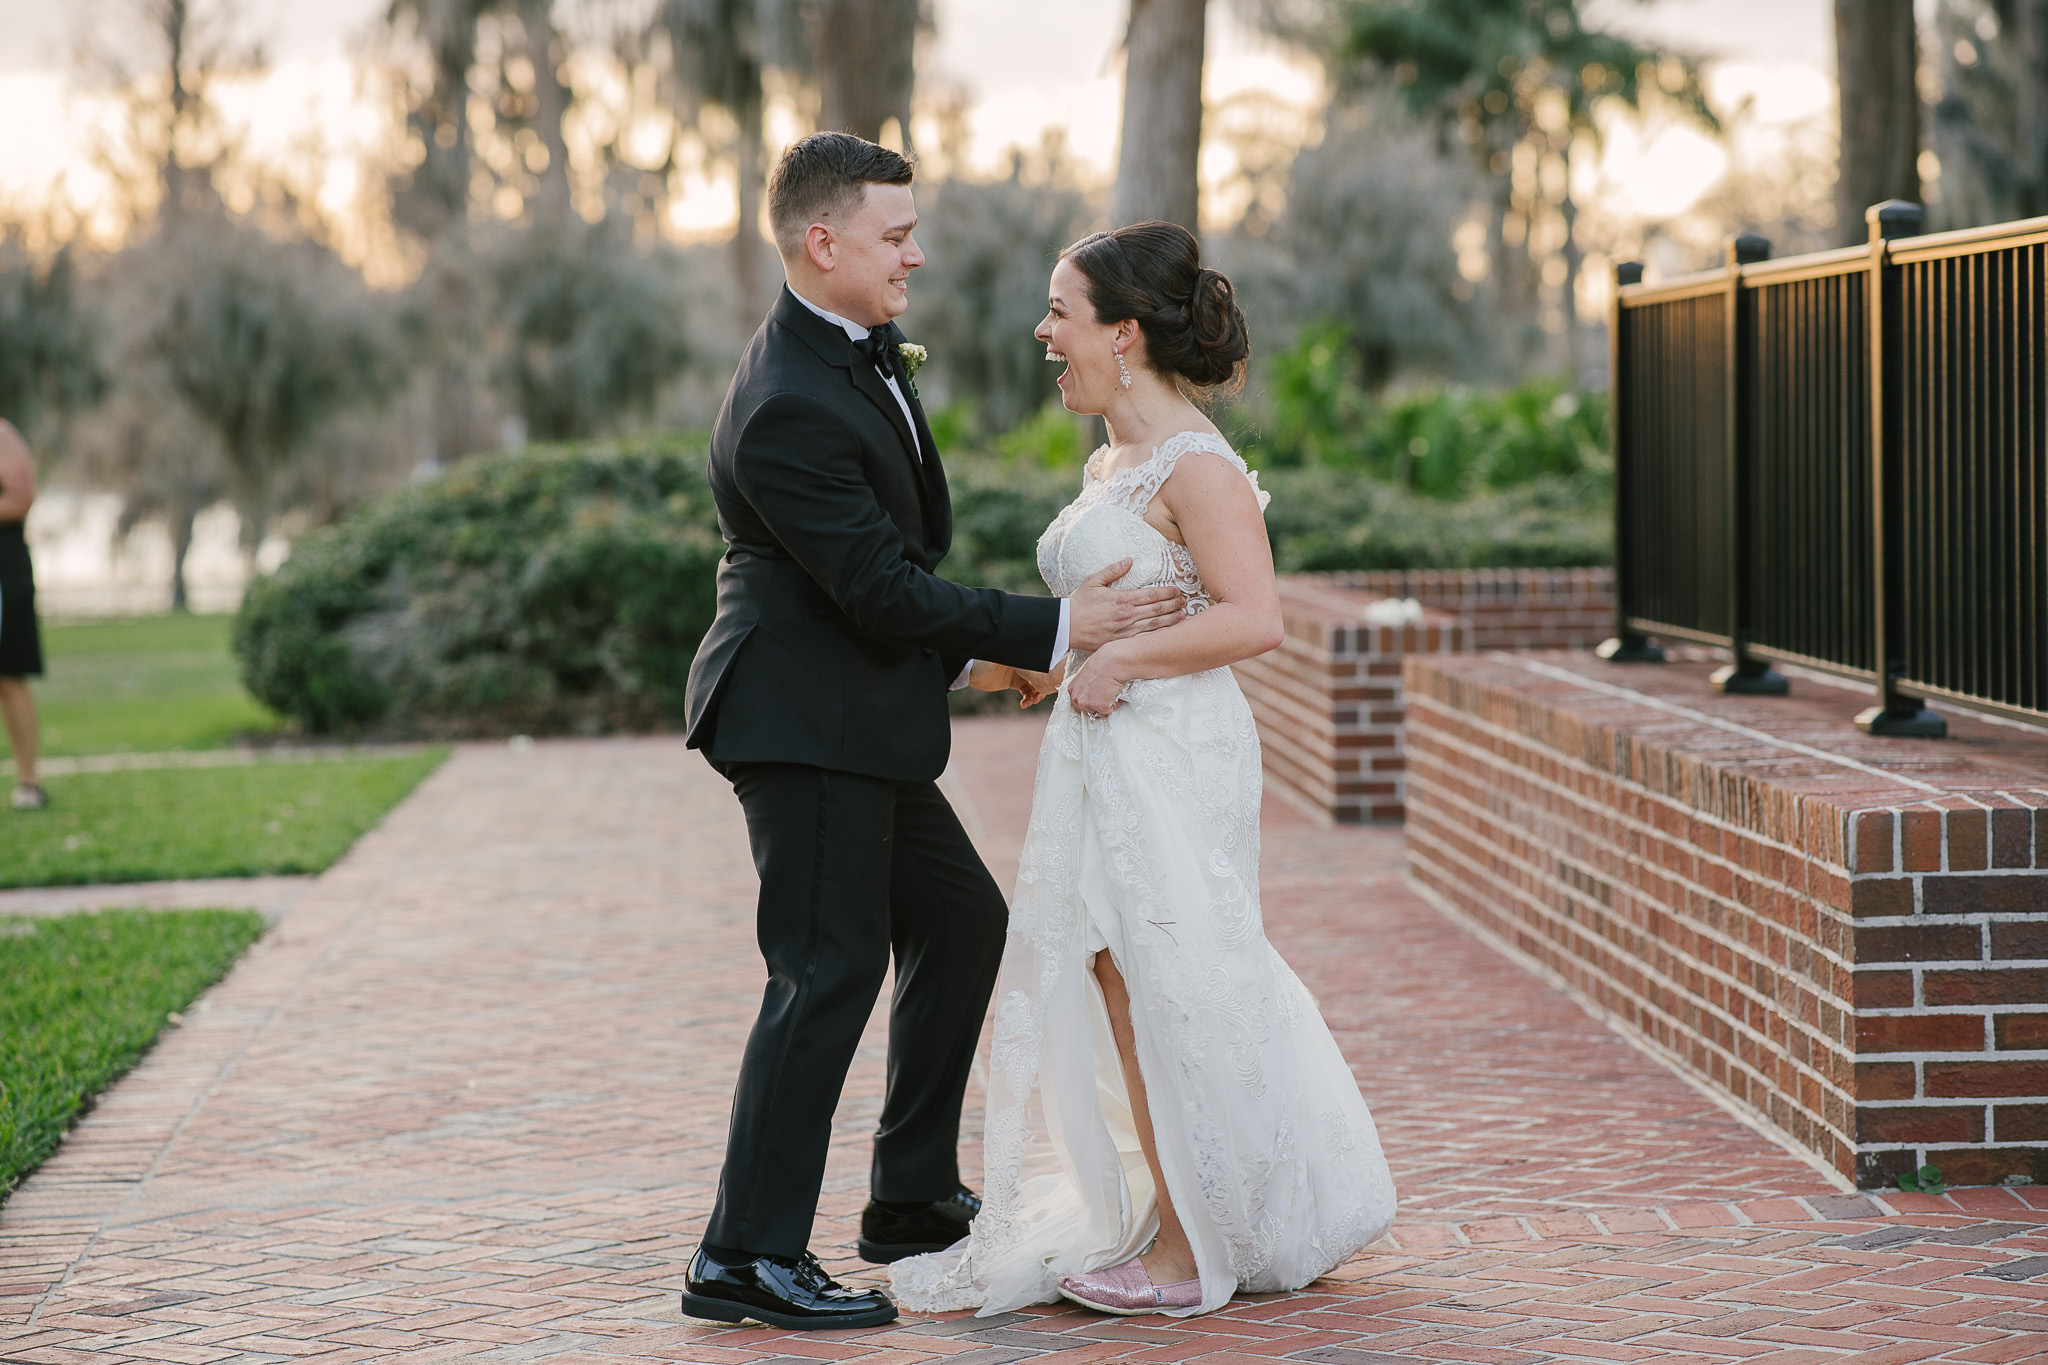 Orlando Wedding Planner Blue Ribbon Weddings  Wedding Photographer Sunglow Photography, Dustin Prickett  Orlando Wedding Venue Cypress Grove Estate House Ceremony & Reception